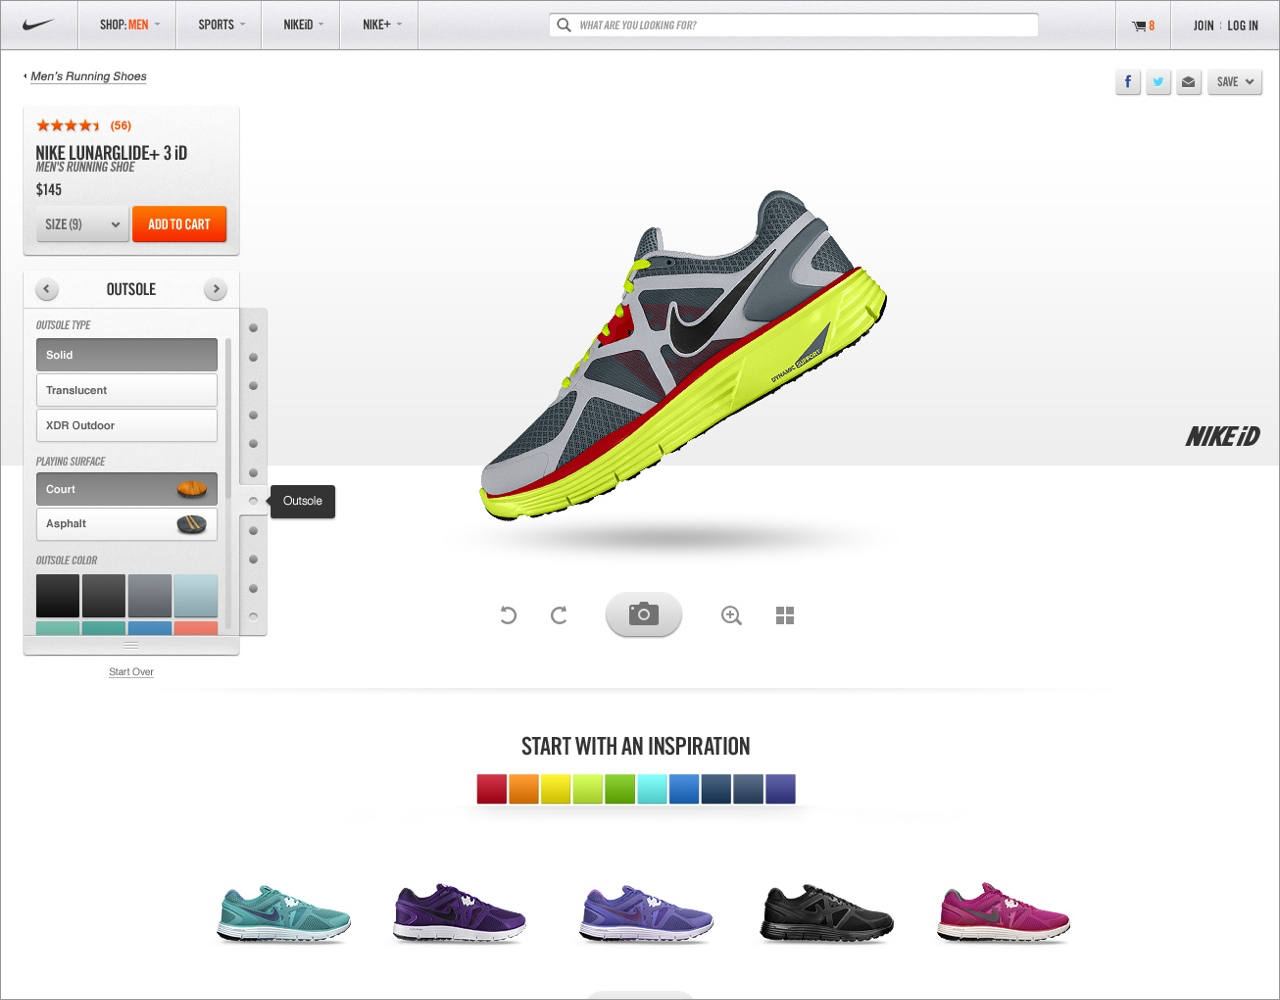 A cleaner, more lightweight UX made the customization experience feel simpler.